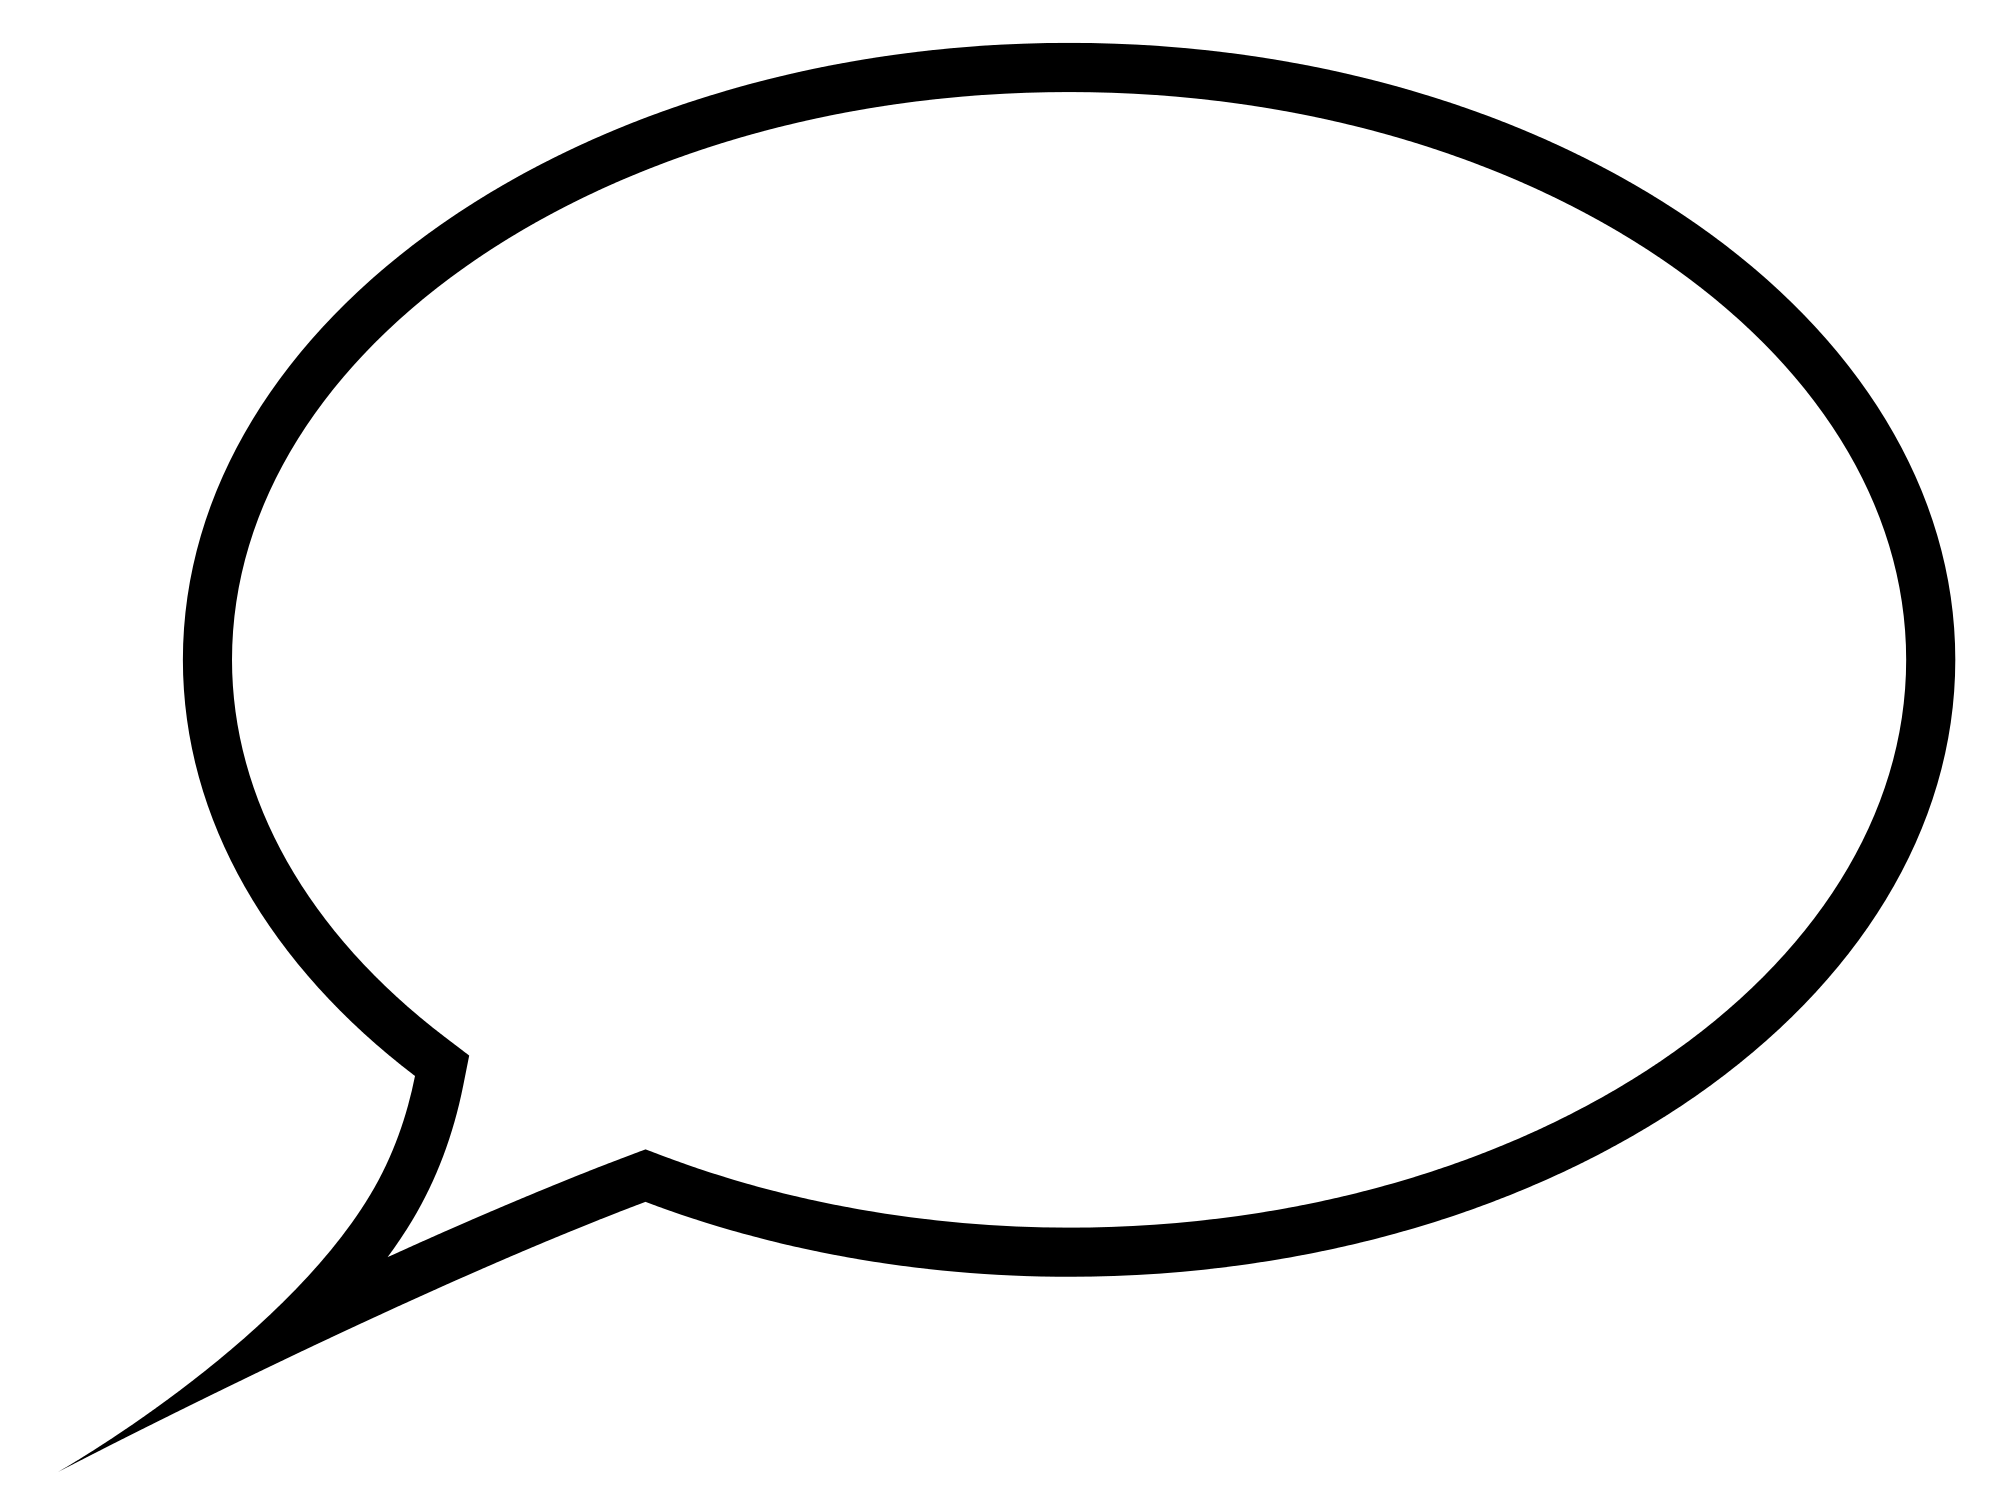 Download - Speech Bubble PNG HD